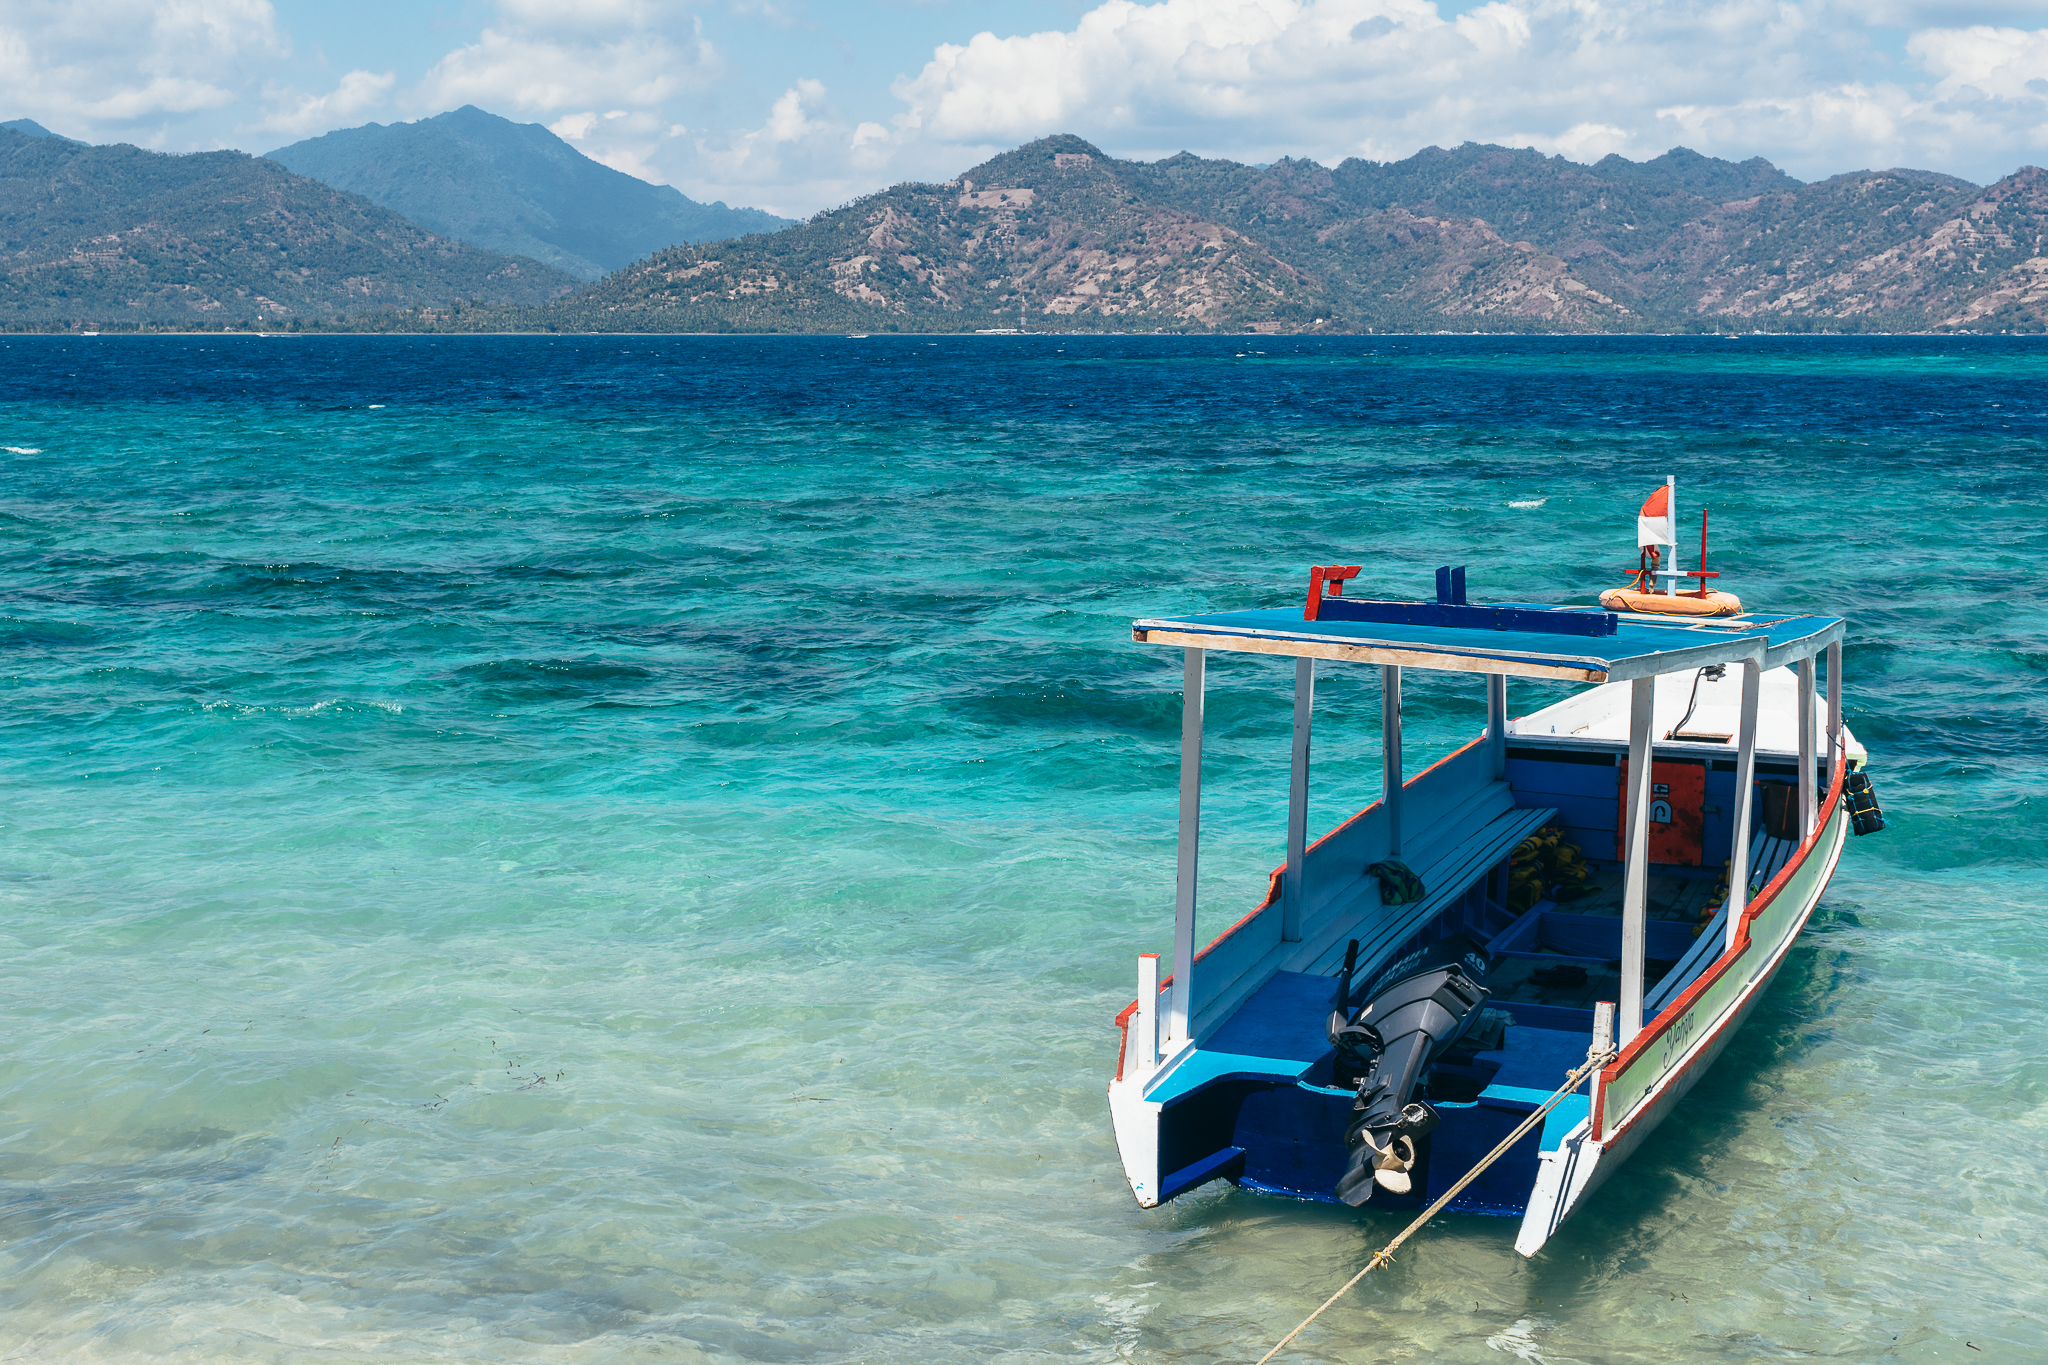 Views from Gili Air.